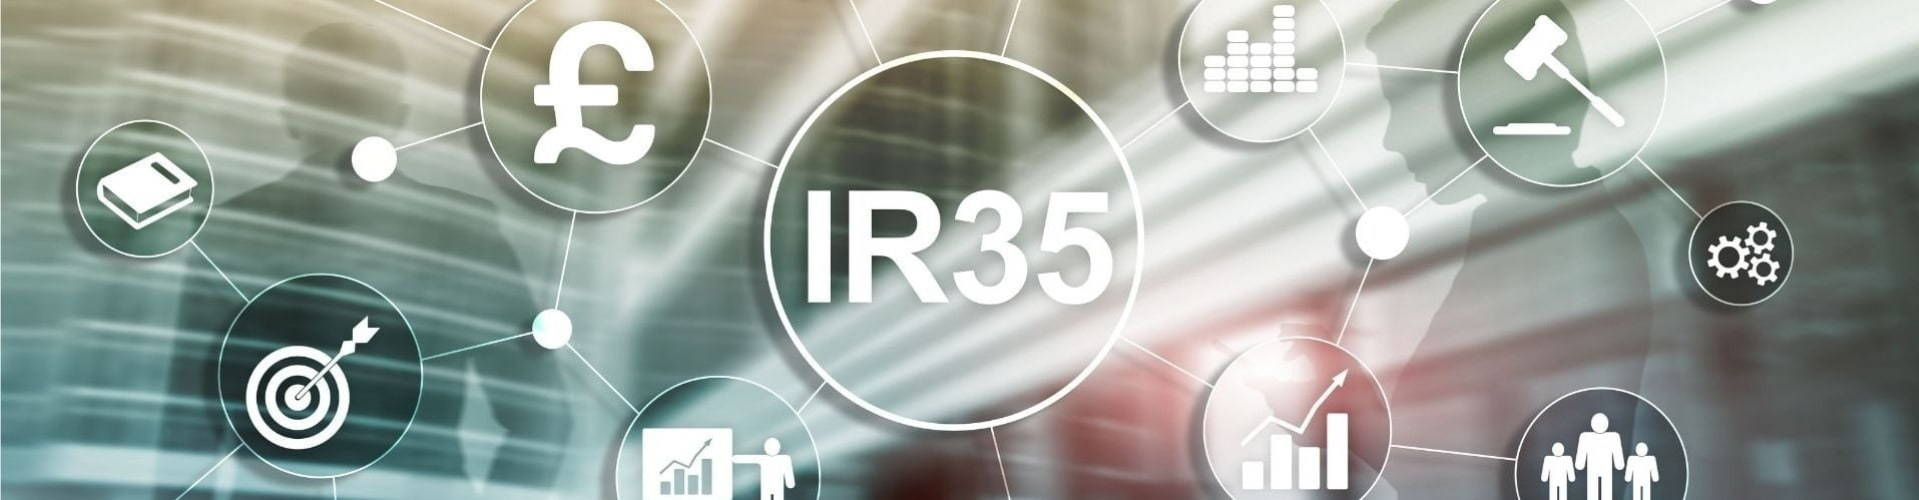 main banner Ir35 image with icons and graph symbols